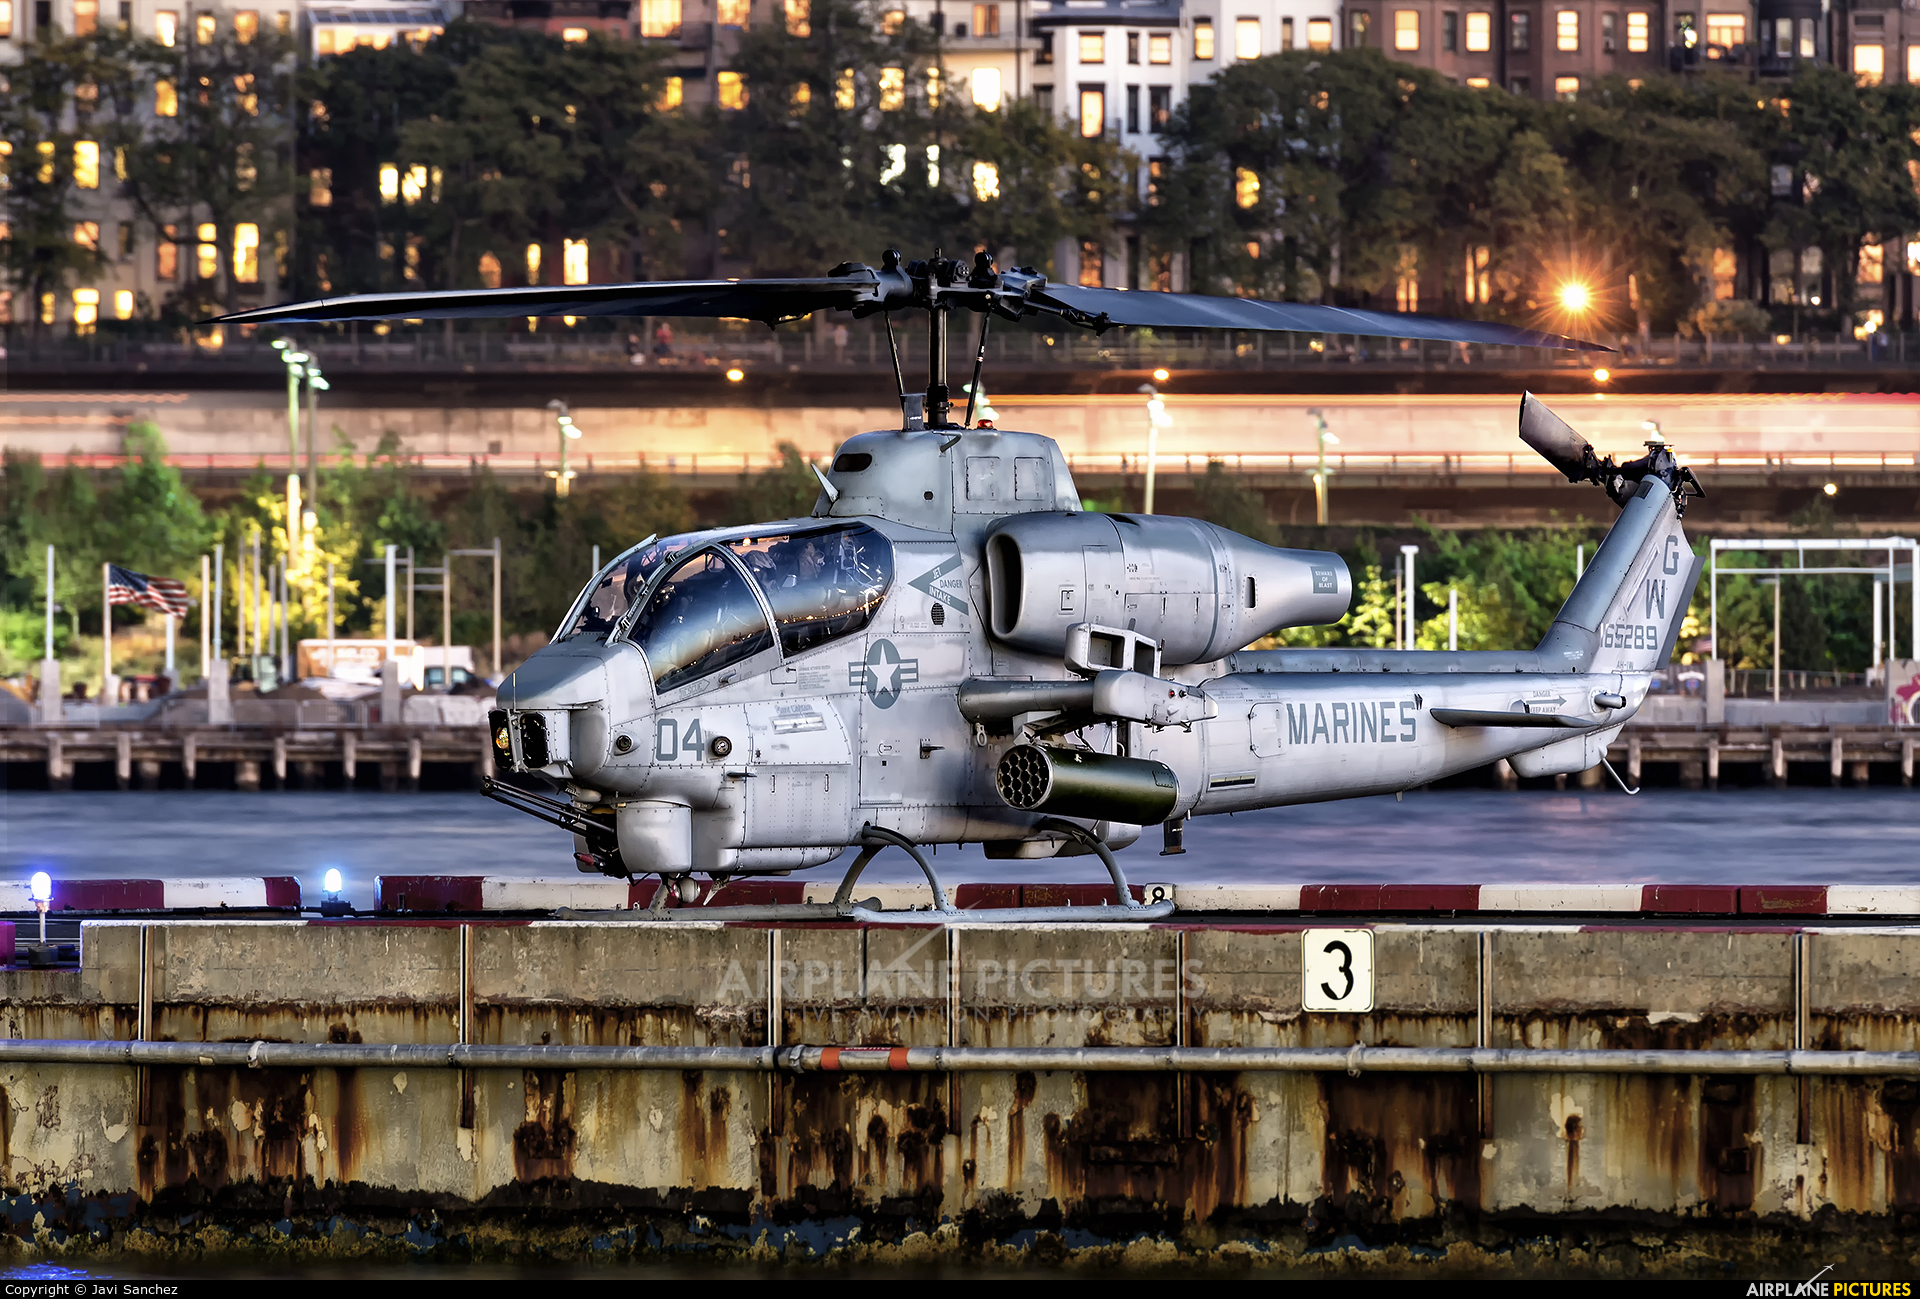 USA - Marine Corps 165289 aircraft at New York - Port Authority Downtown Manhattan / Wall Street Heliport